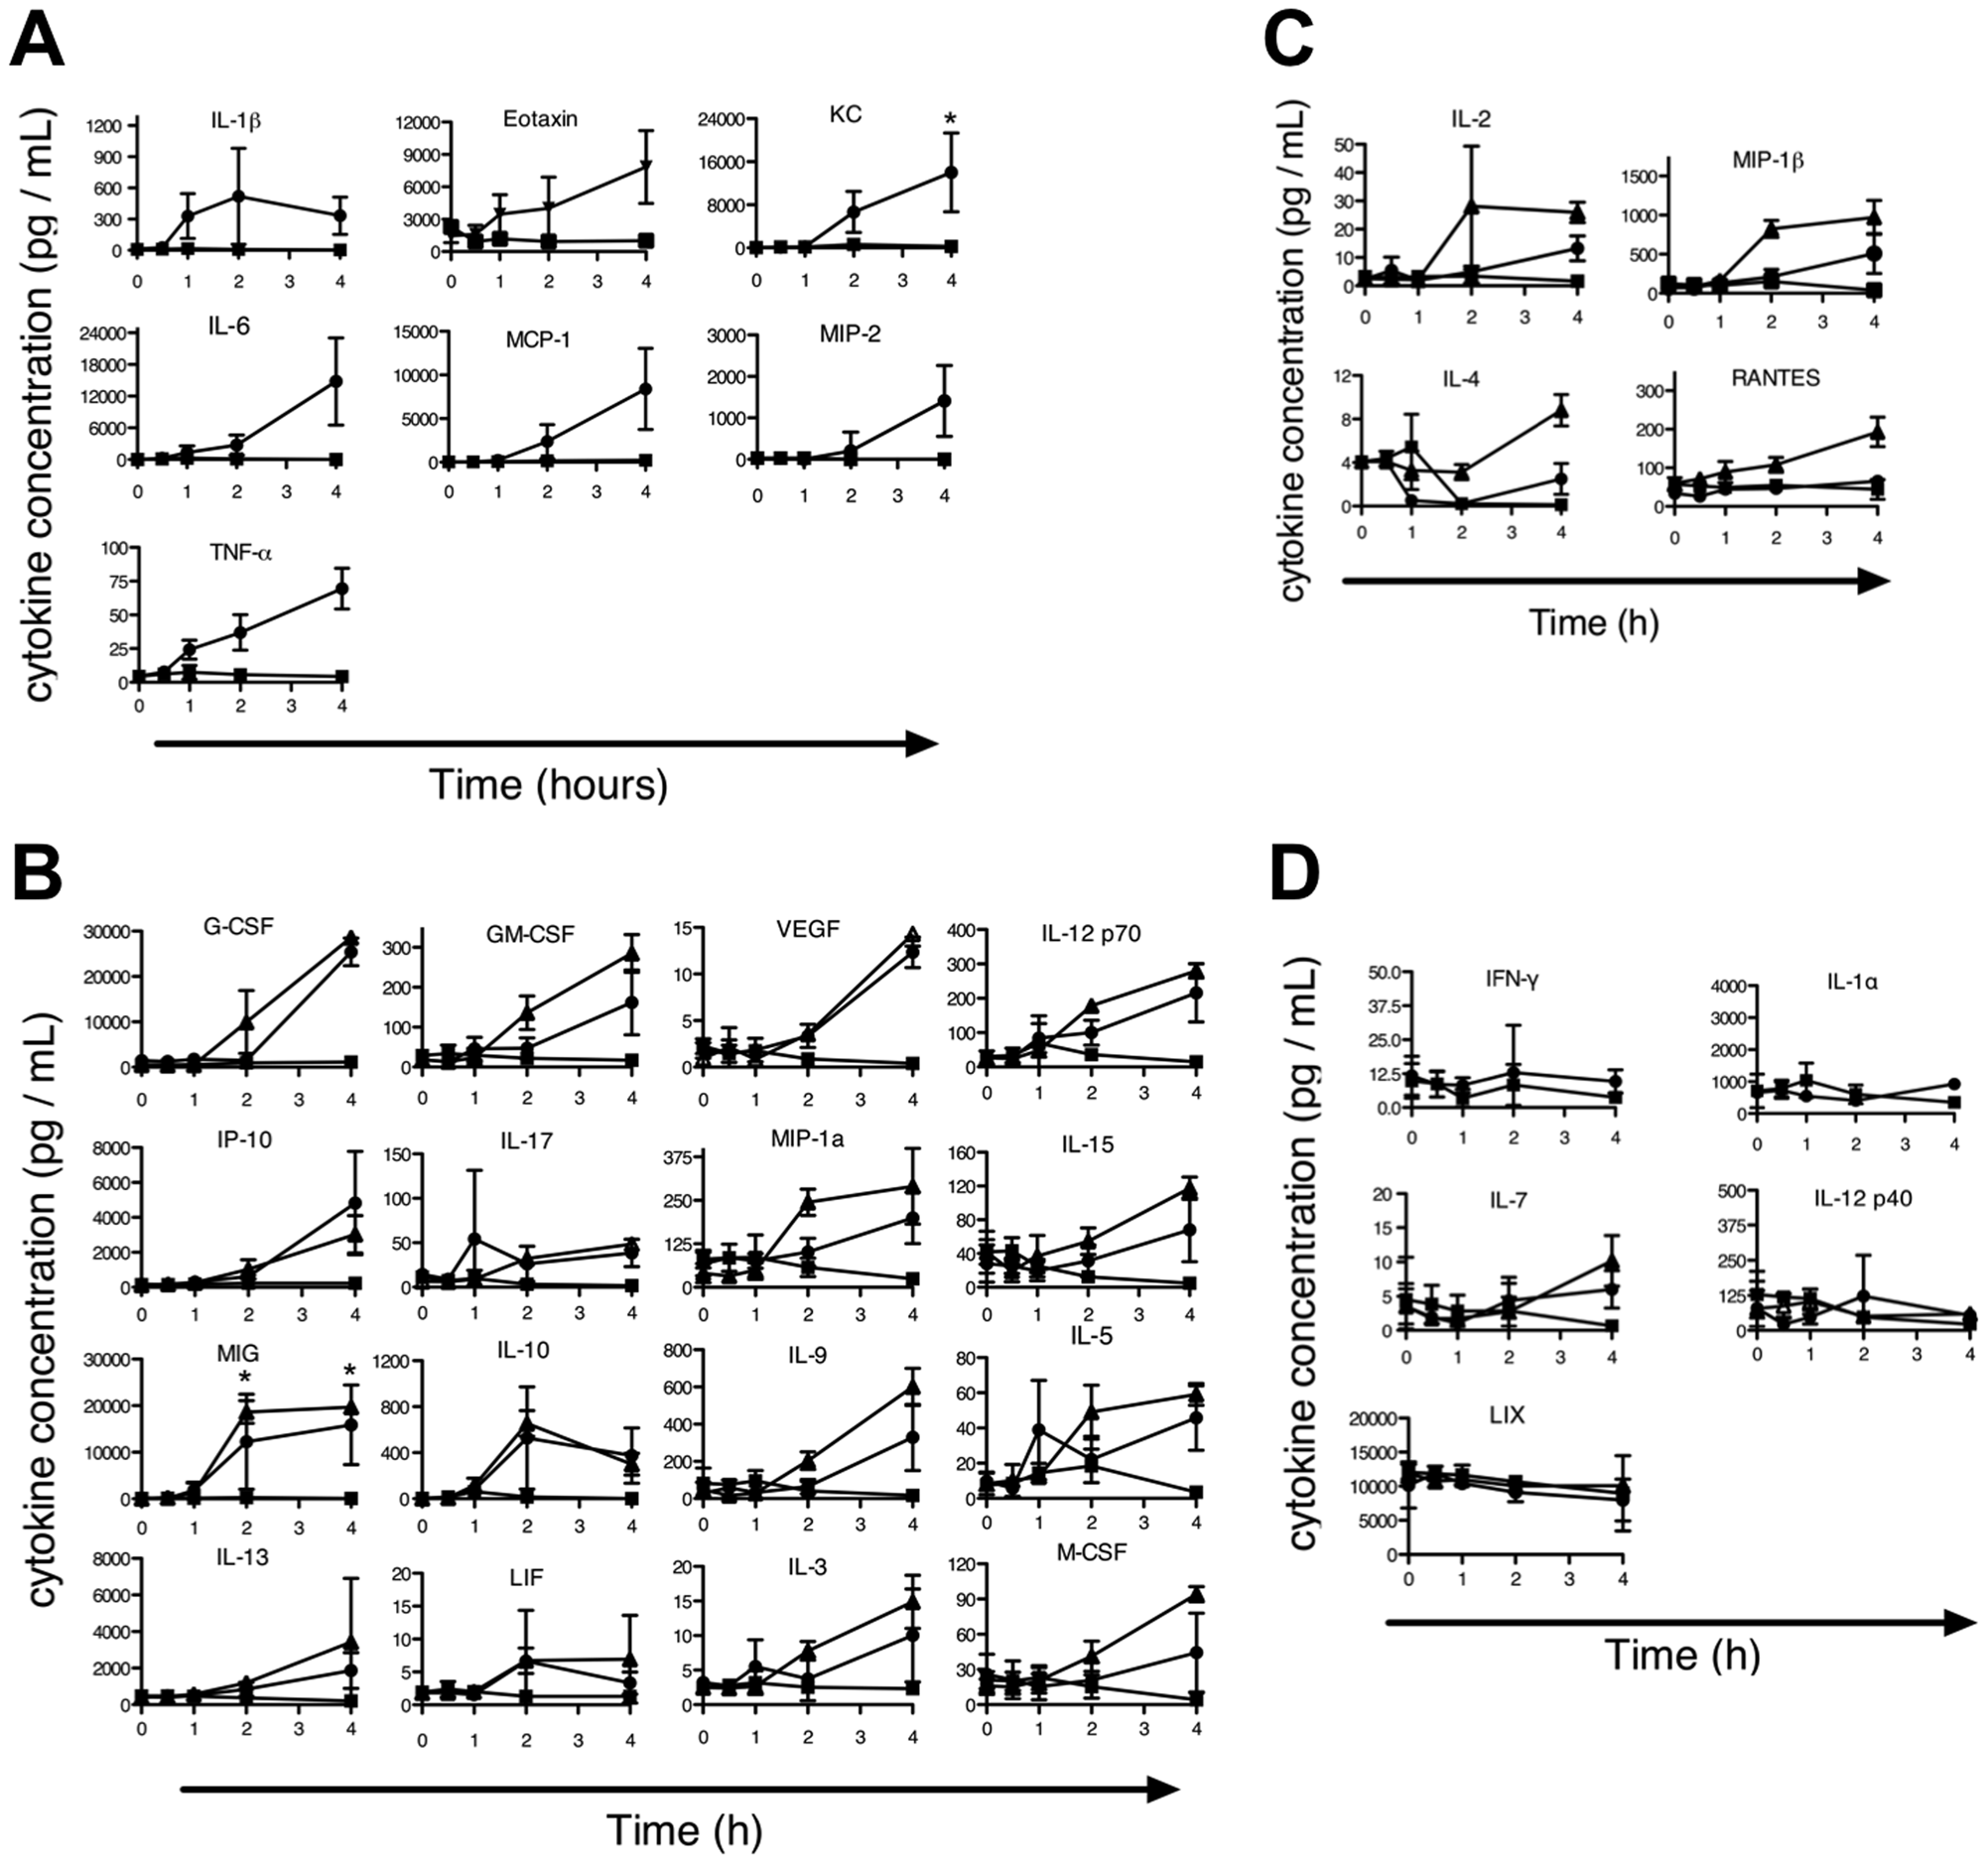 Evaluation of cytokine profile during the LT-induced Early Response Phenotype.